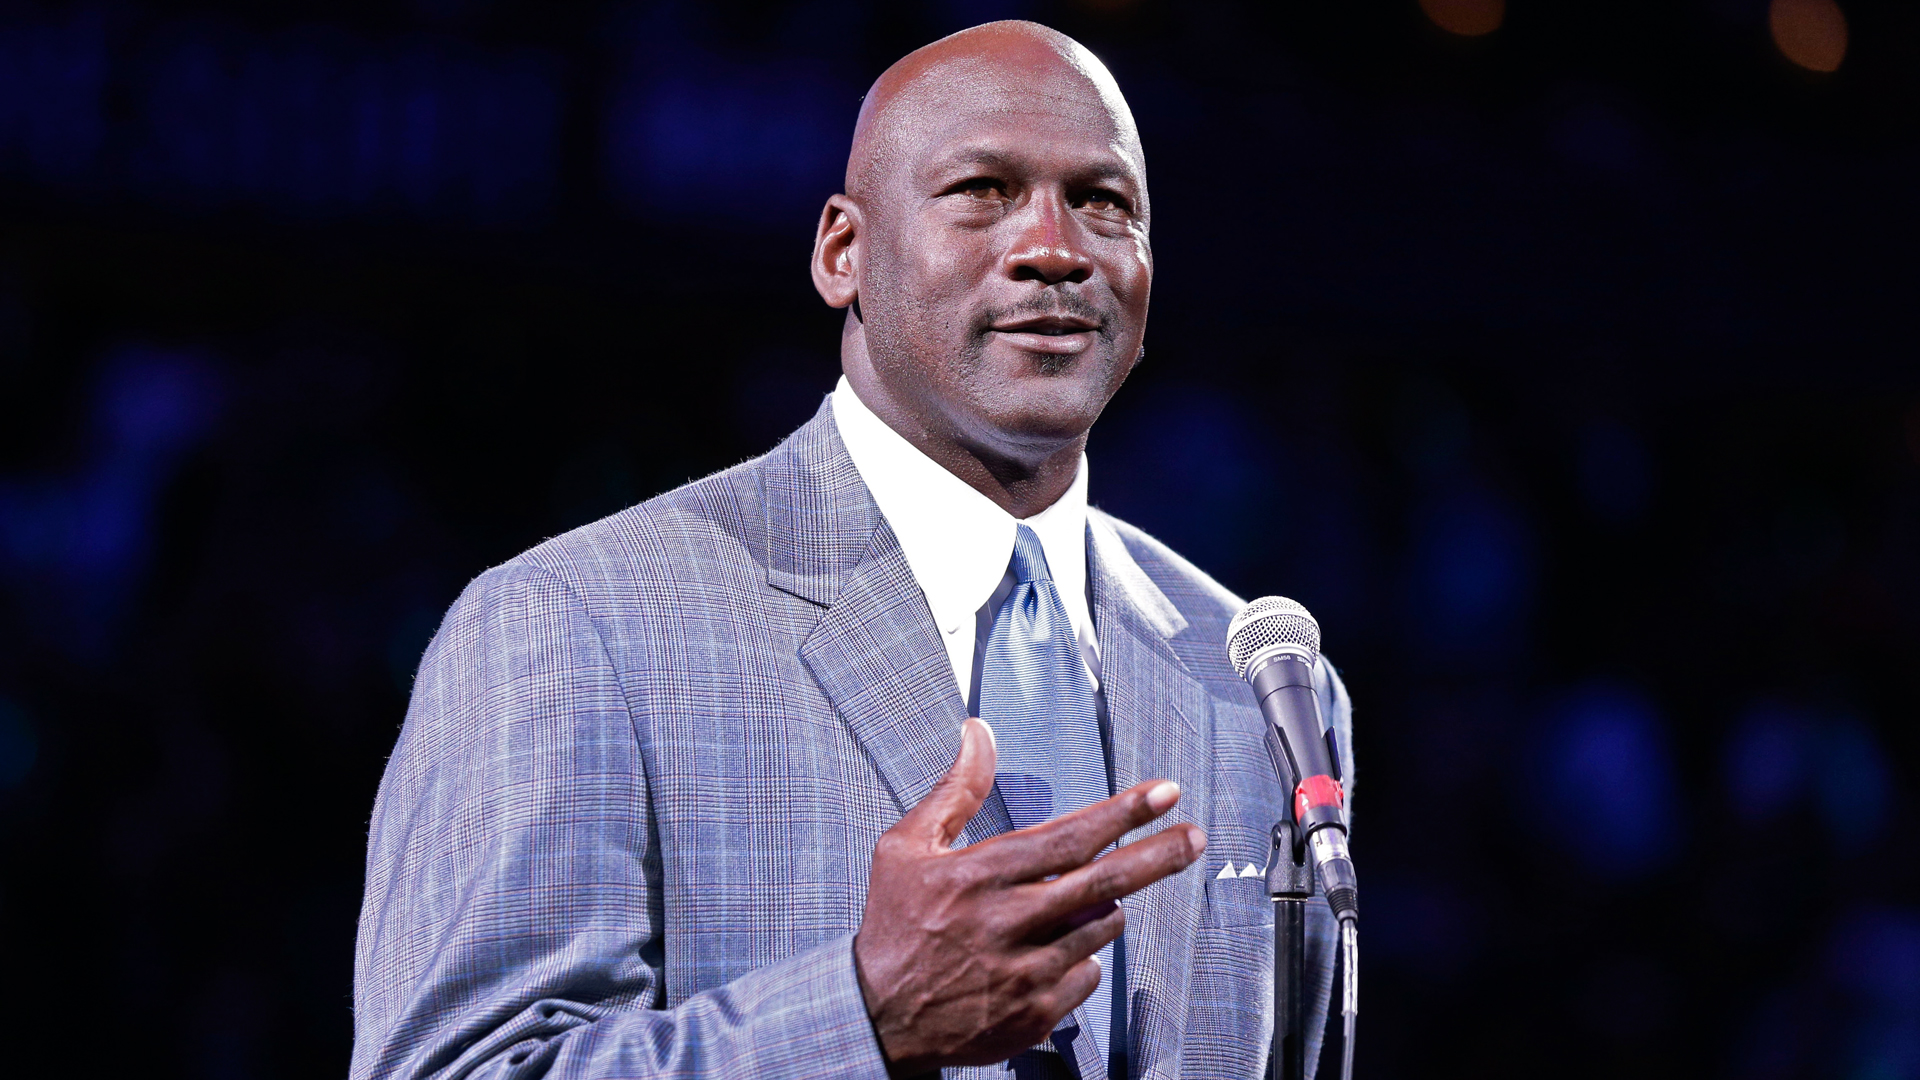 michael jordan wikimichael jordan wiki, michael jordan net worth, michael jordan instagram, michael jordan shoes, michael jordan 2017, michael jordan dunk, michael jordan quotes, michael jordan 23, michael jordan film, michael jordan biography, michael jordan height, michael jordan кроссовки, michael jordan stats, michael jordan wife, michael jordan crying, michael jordan chaos in the windy city, michael jordan house, michael jordan wallpapers, michael jordan son, michael jordan twitter